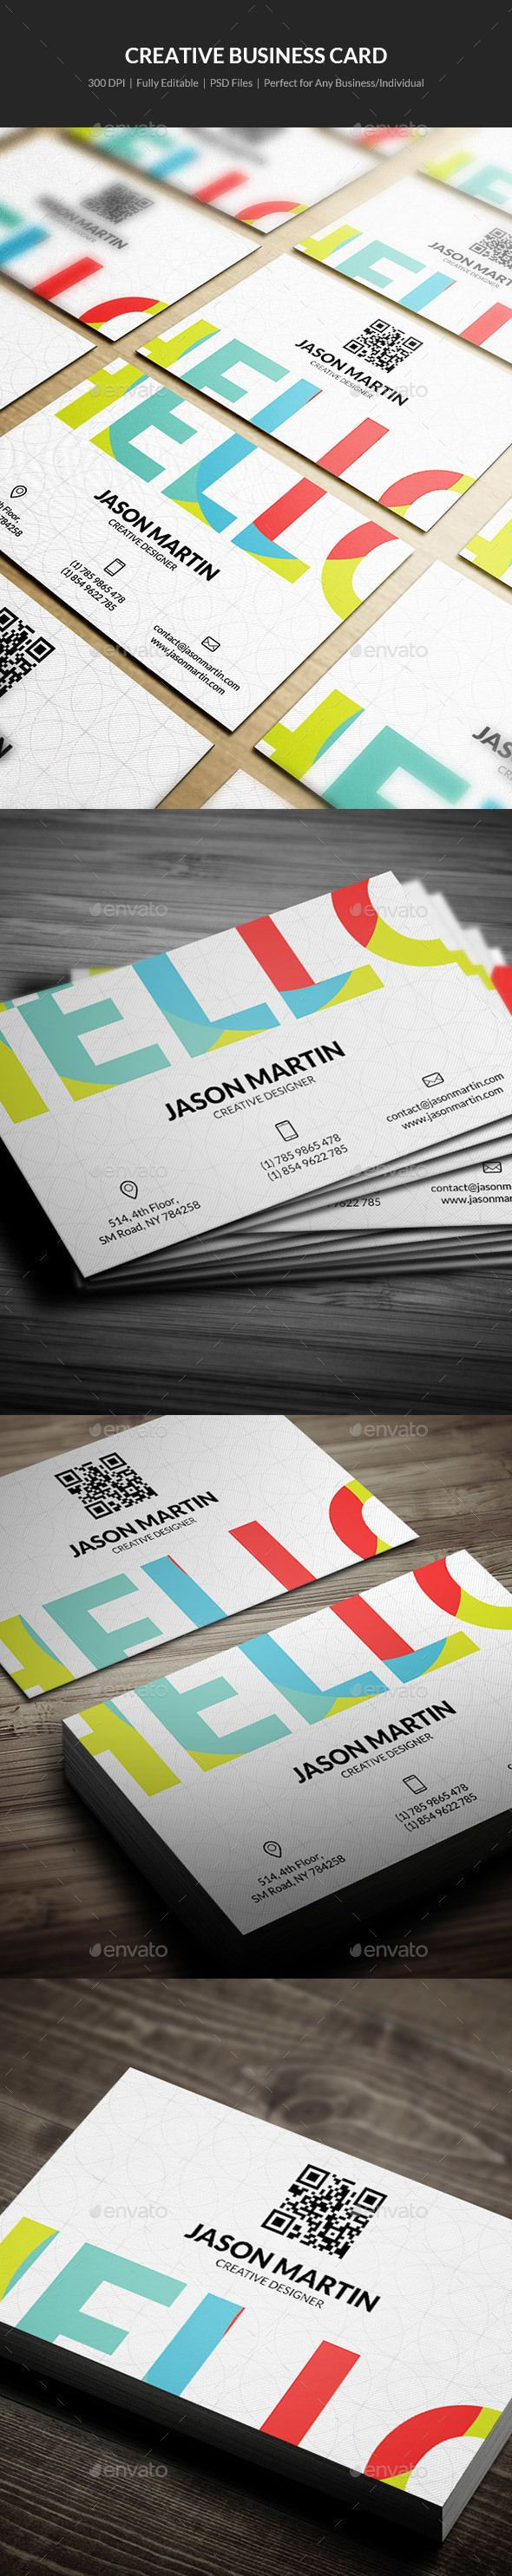 Best 25+ Creative business cards ideas on Pinterest | Unique ...